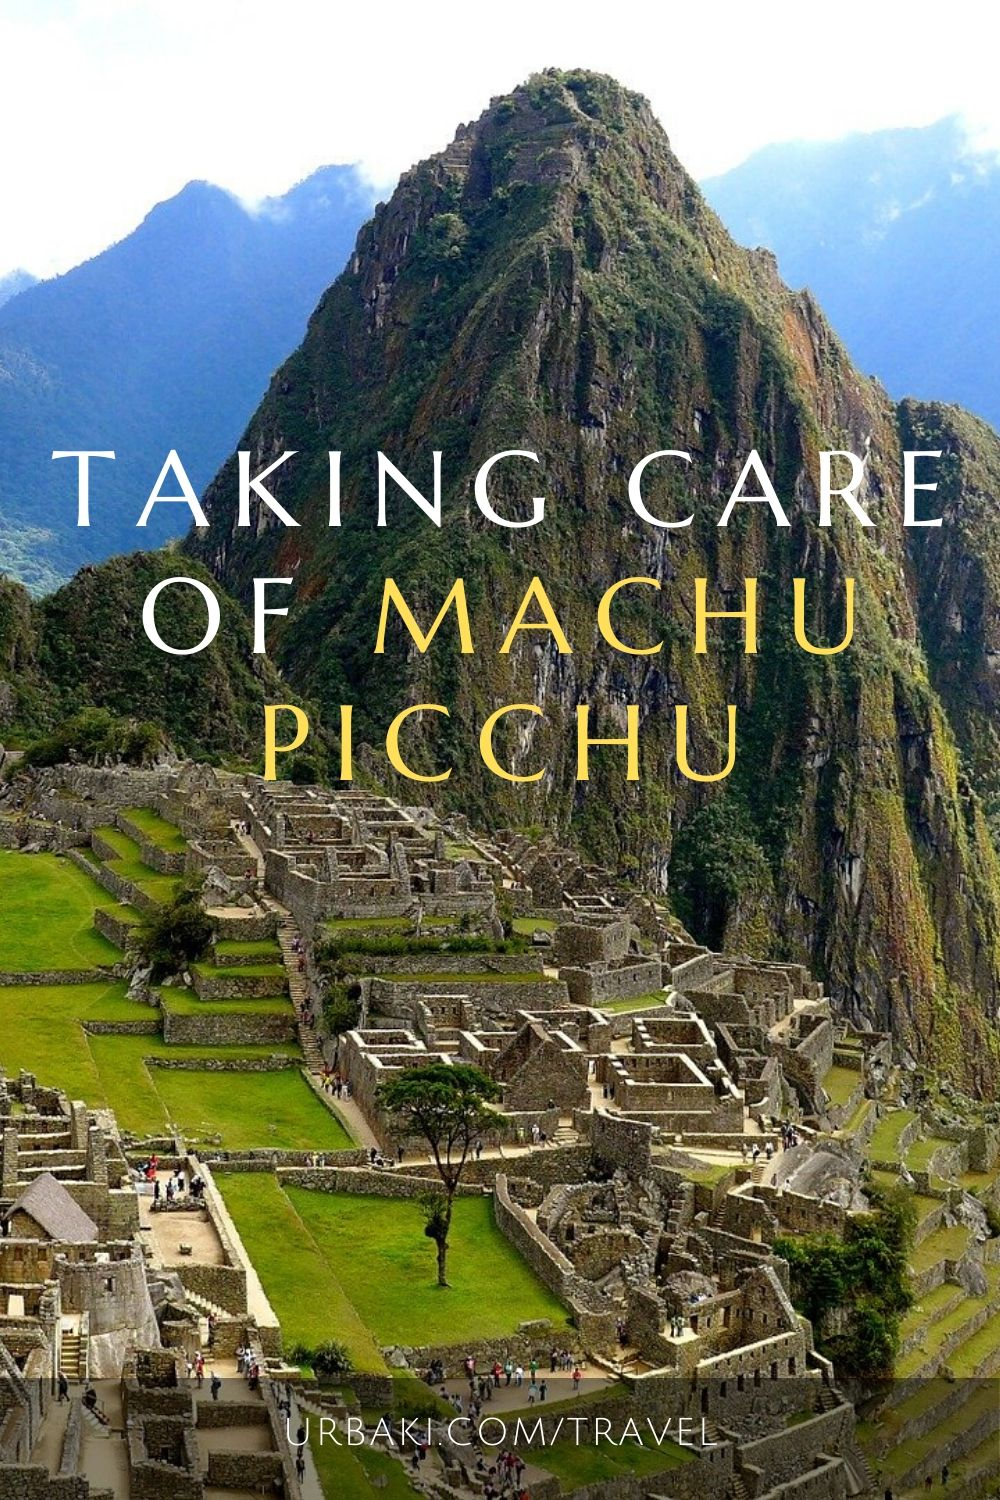 Taking Care of Machu Picchu